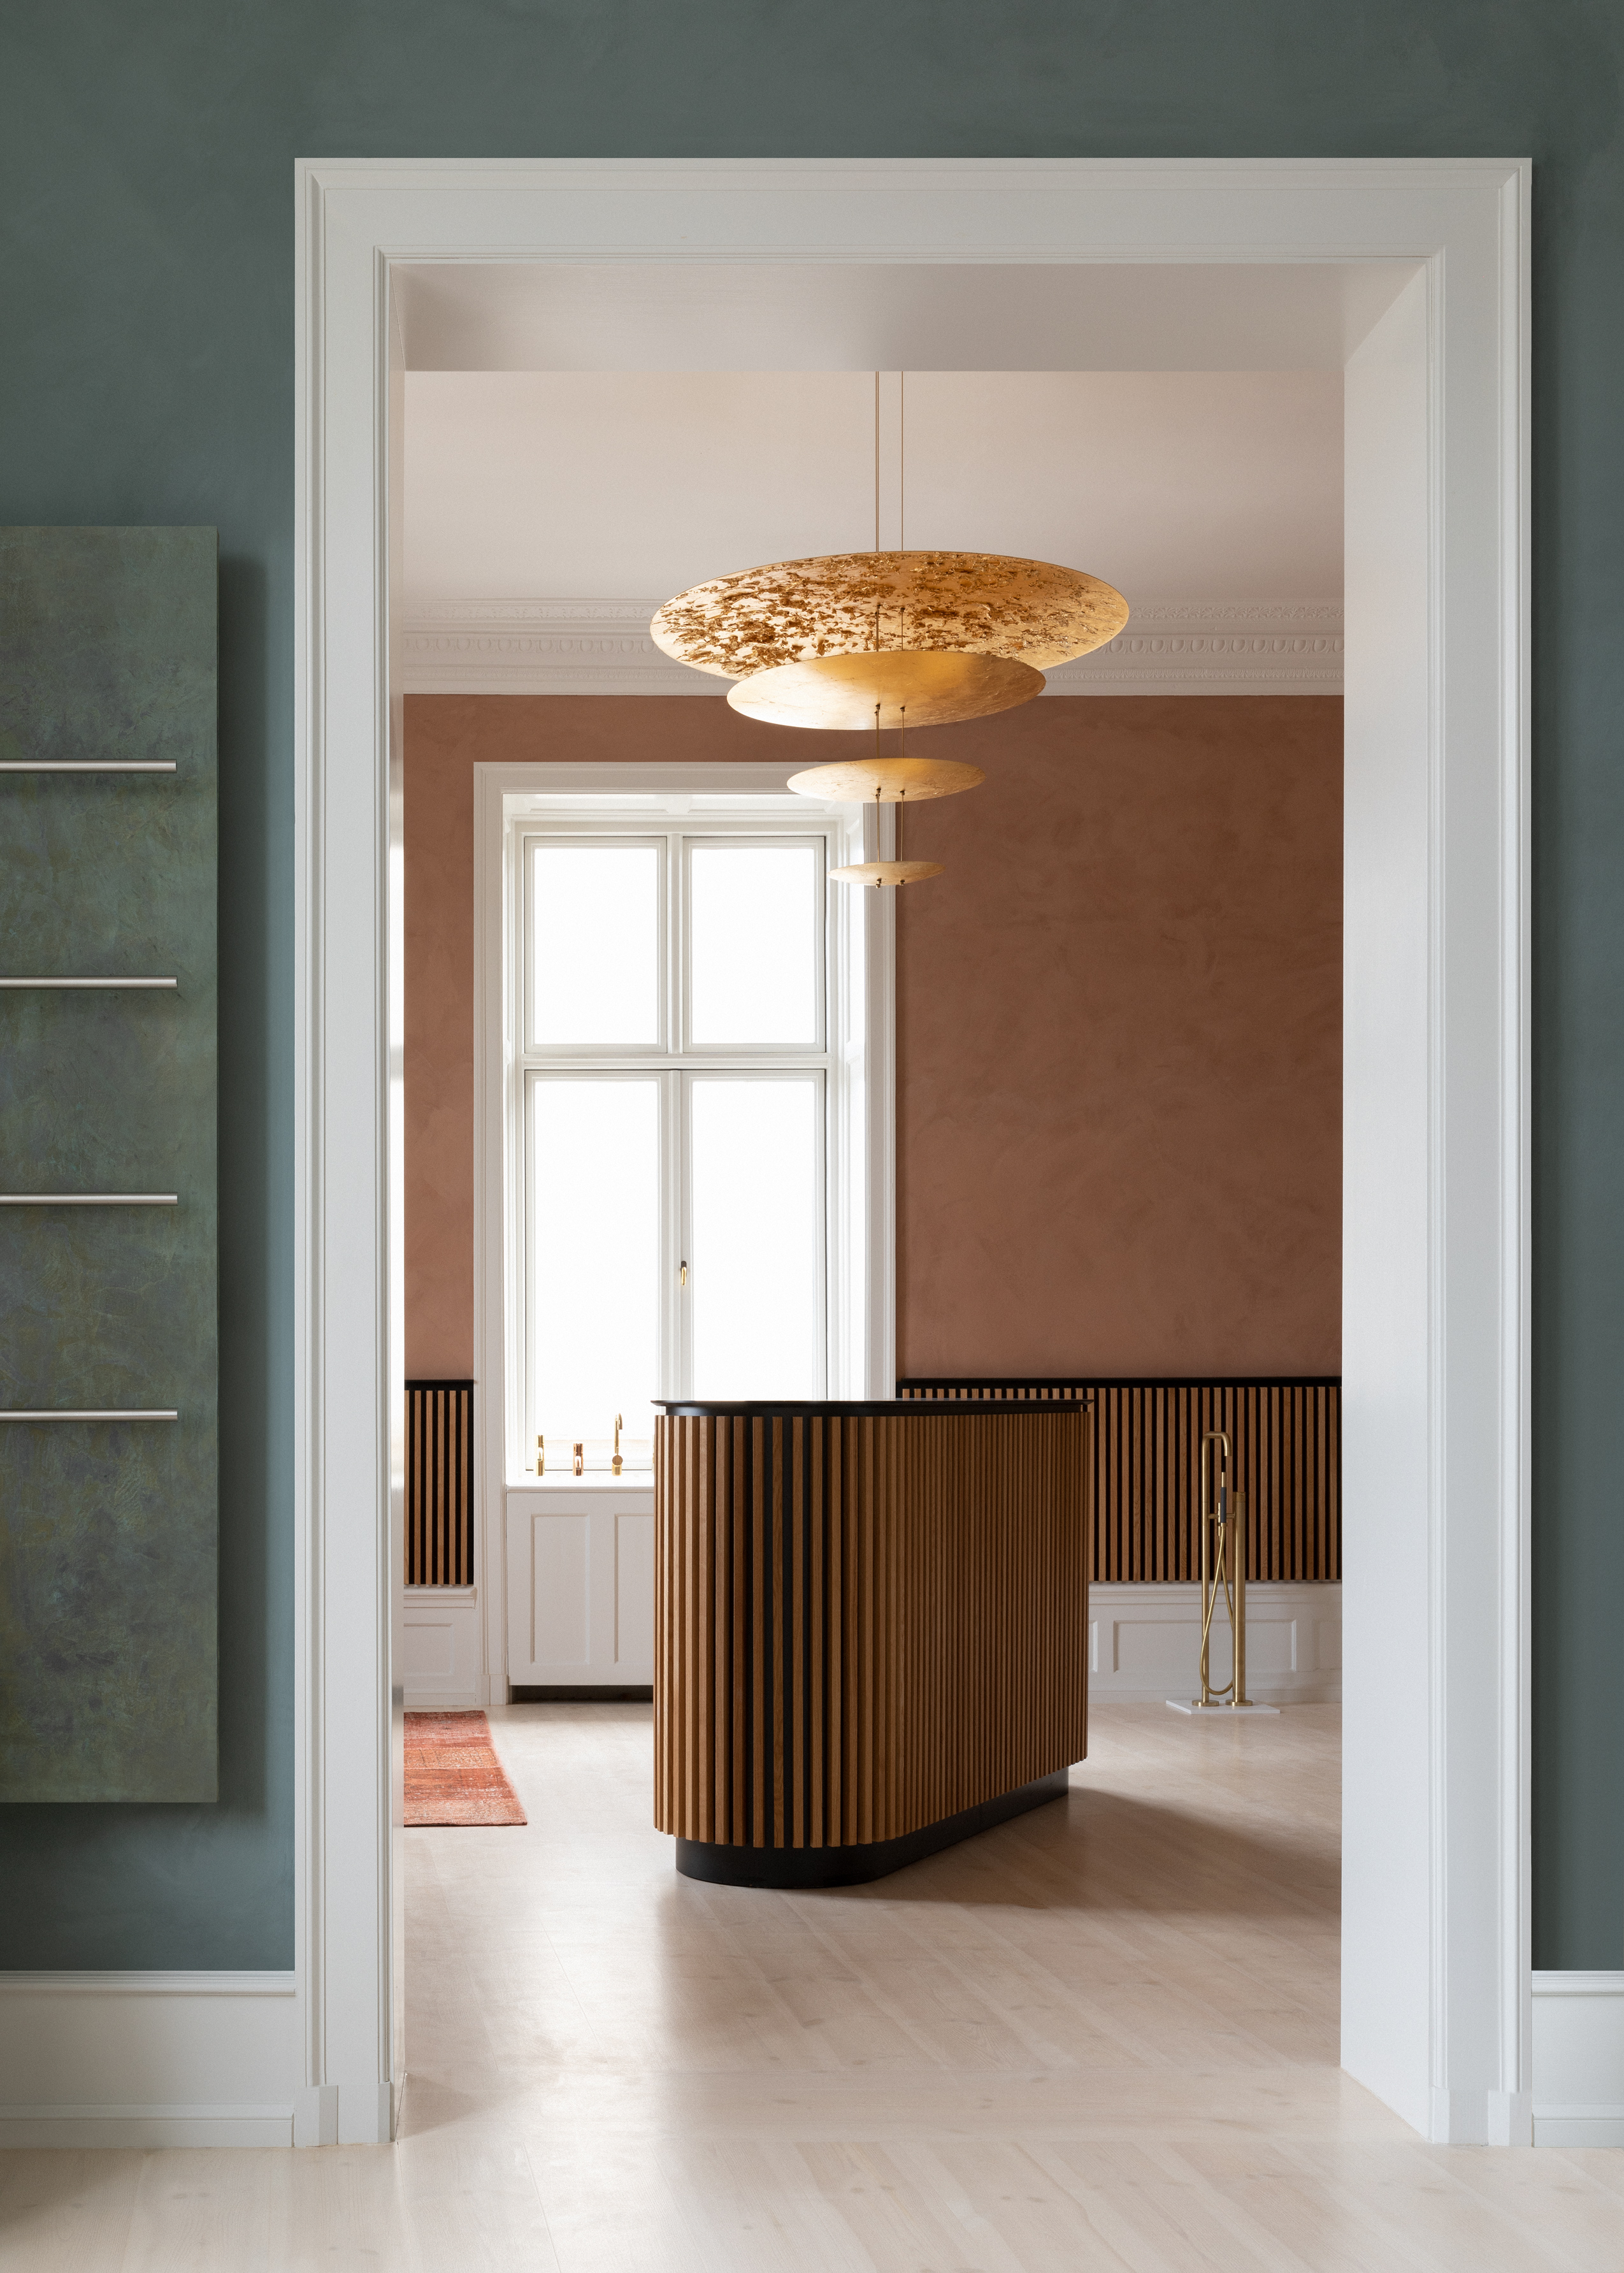 VOLA CPH Showroom CMA 2021 384